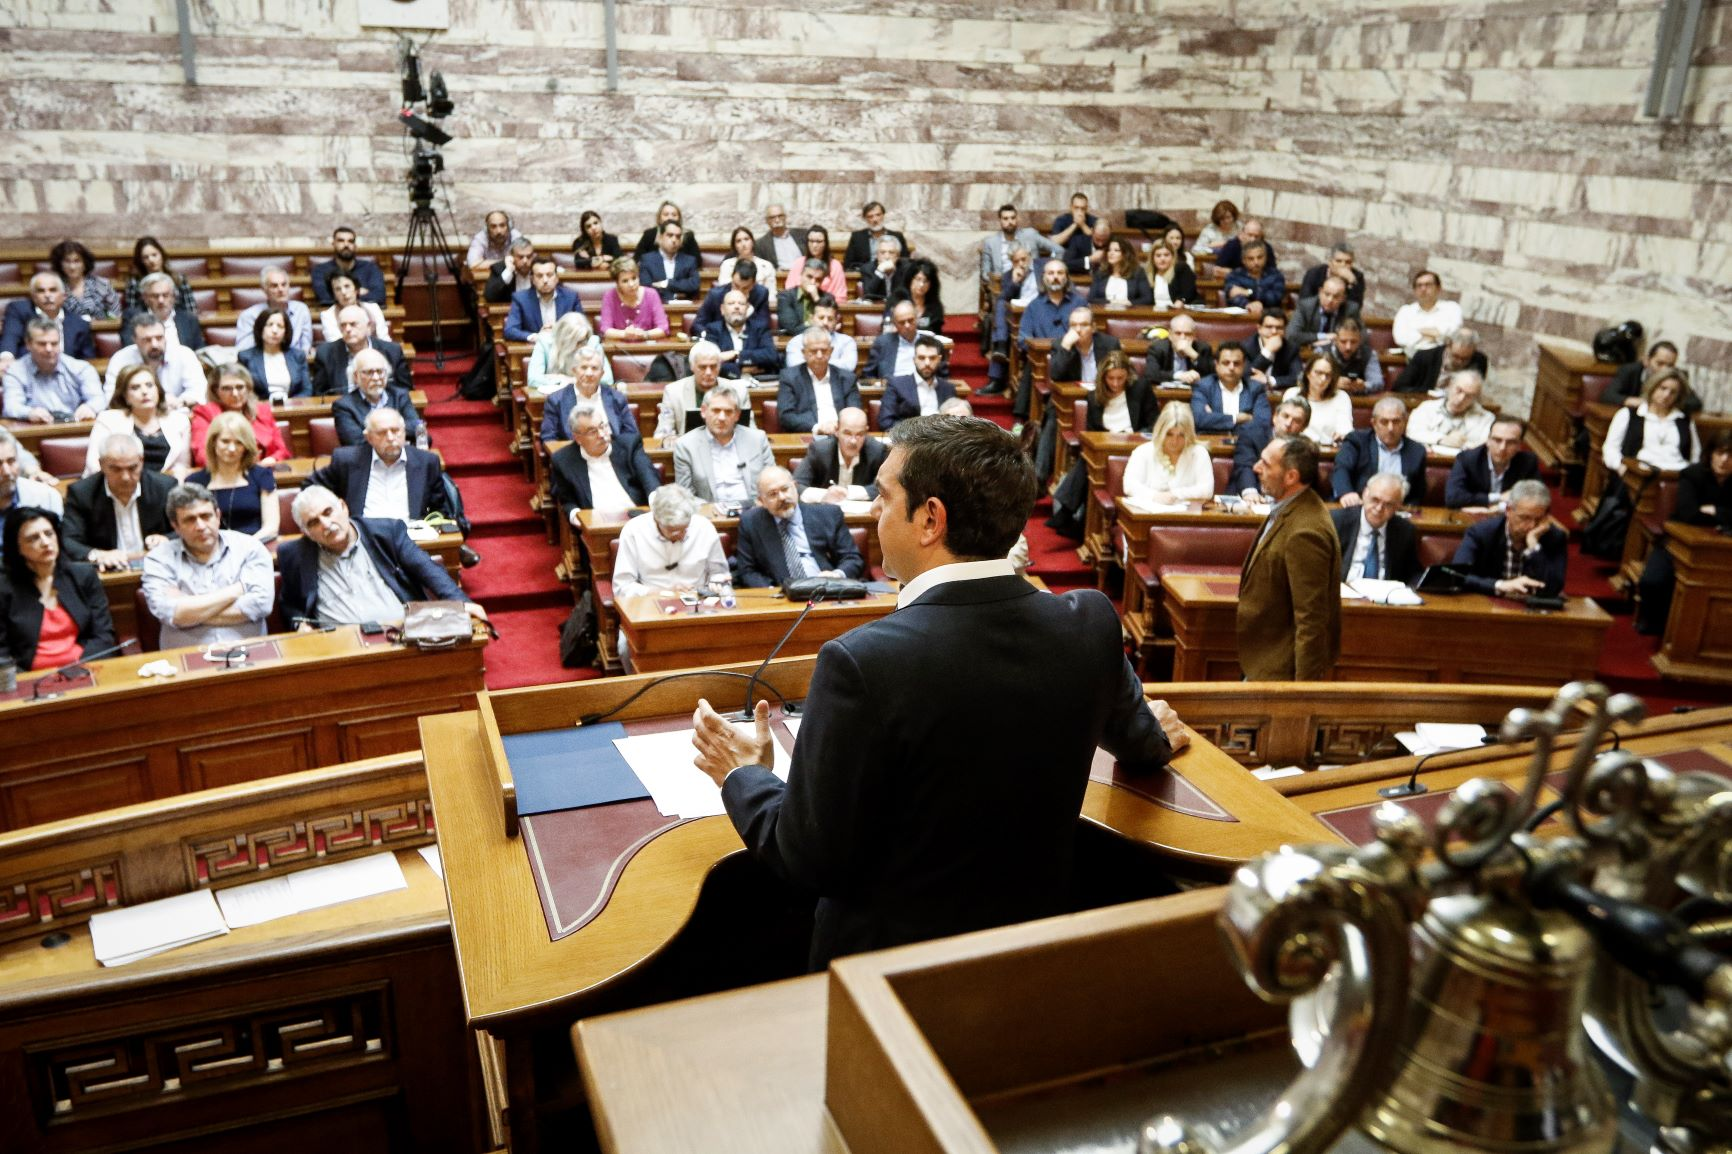 Greek Constitutional review aims at consensus and progressive developments